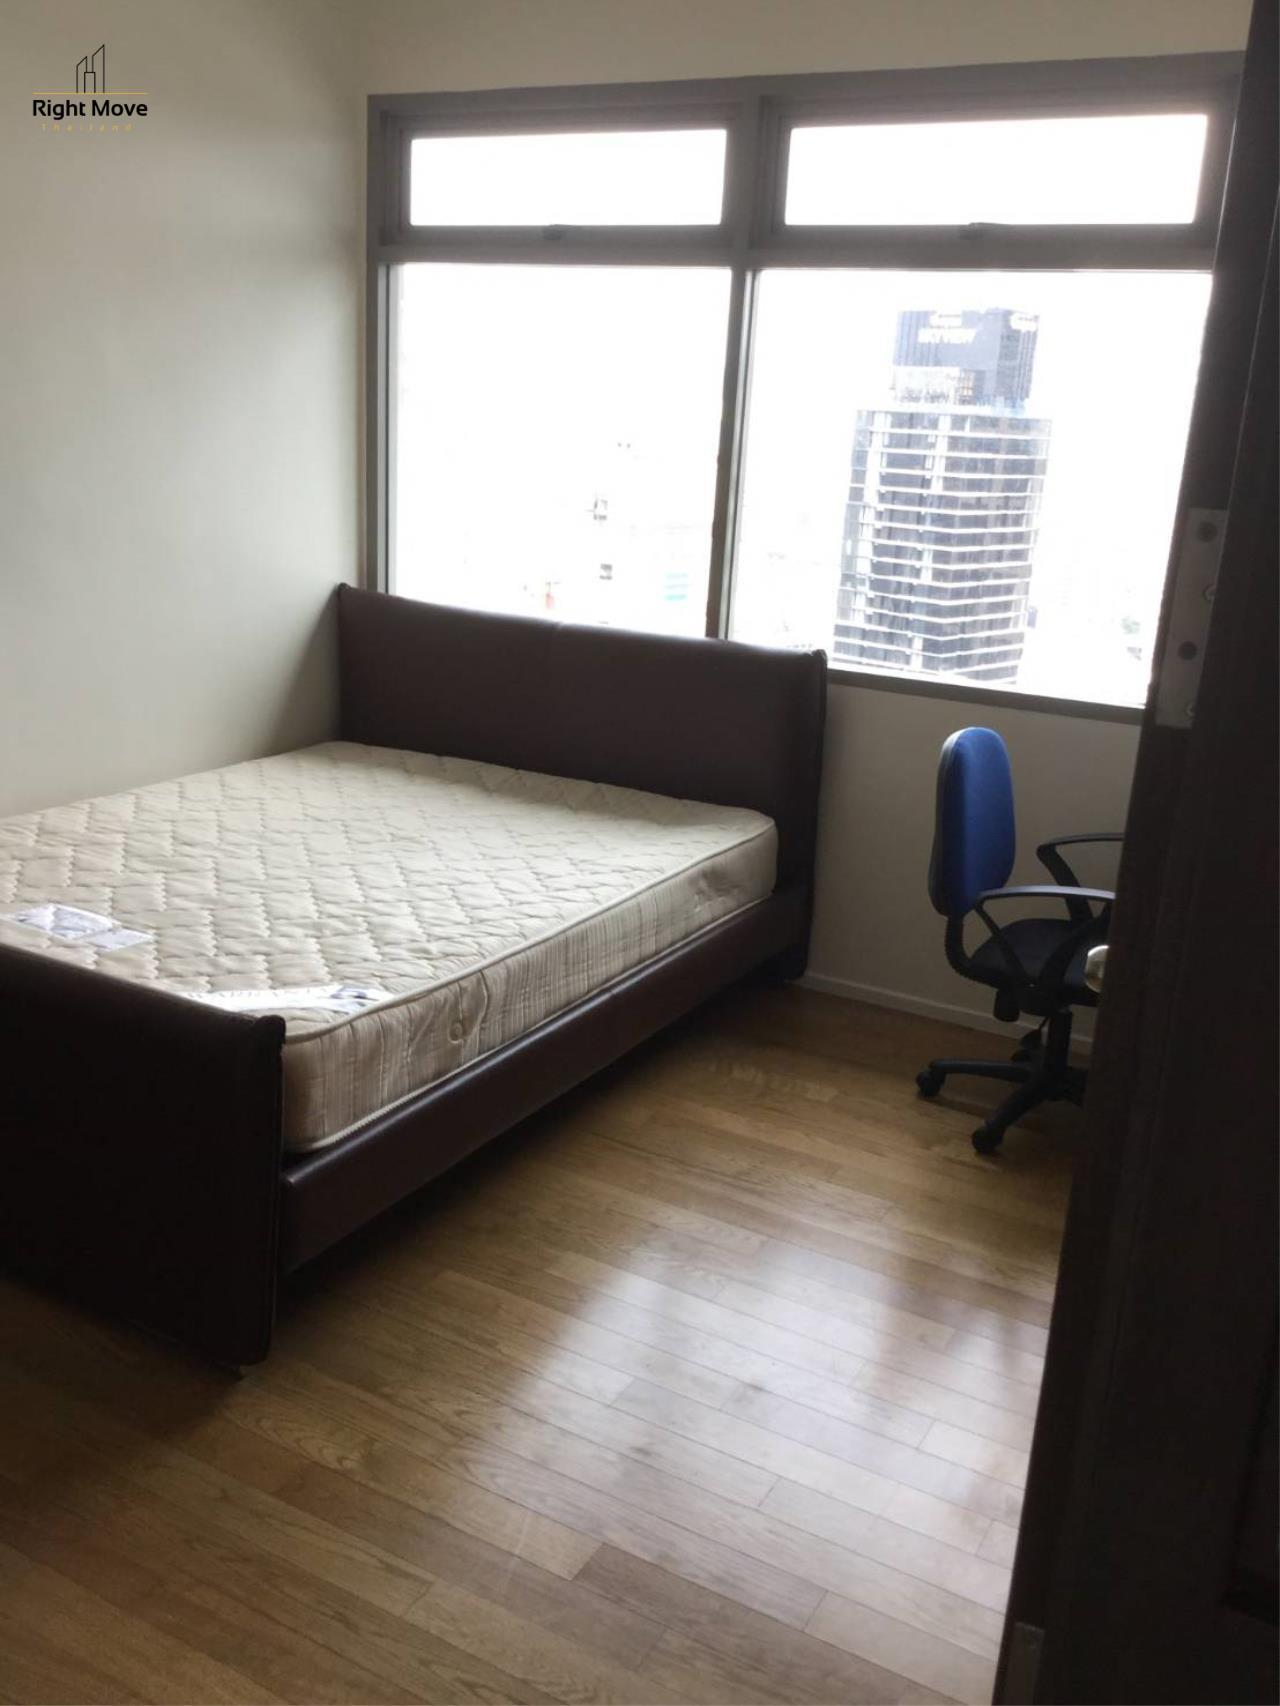 Right Move Thailand Agency's CA5486 Madison Condominium For Rent 90,000 THB - 3 Bedrooms - 160 sqm. 11